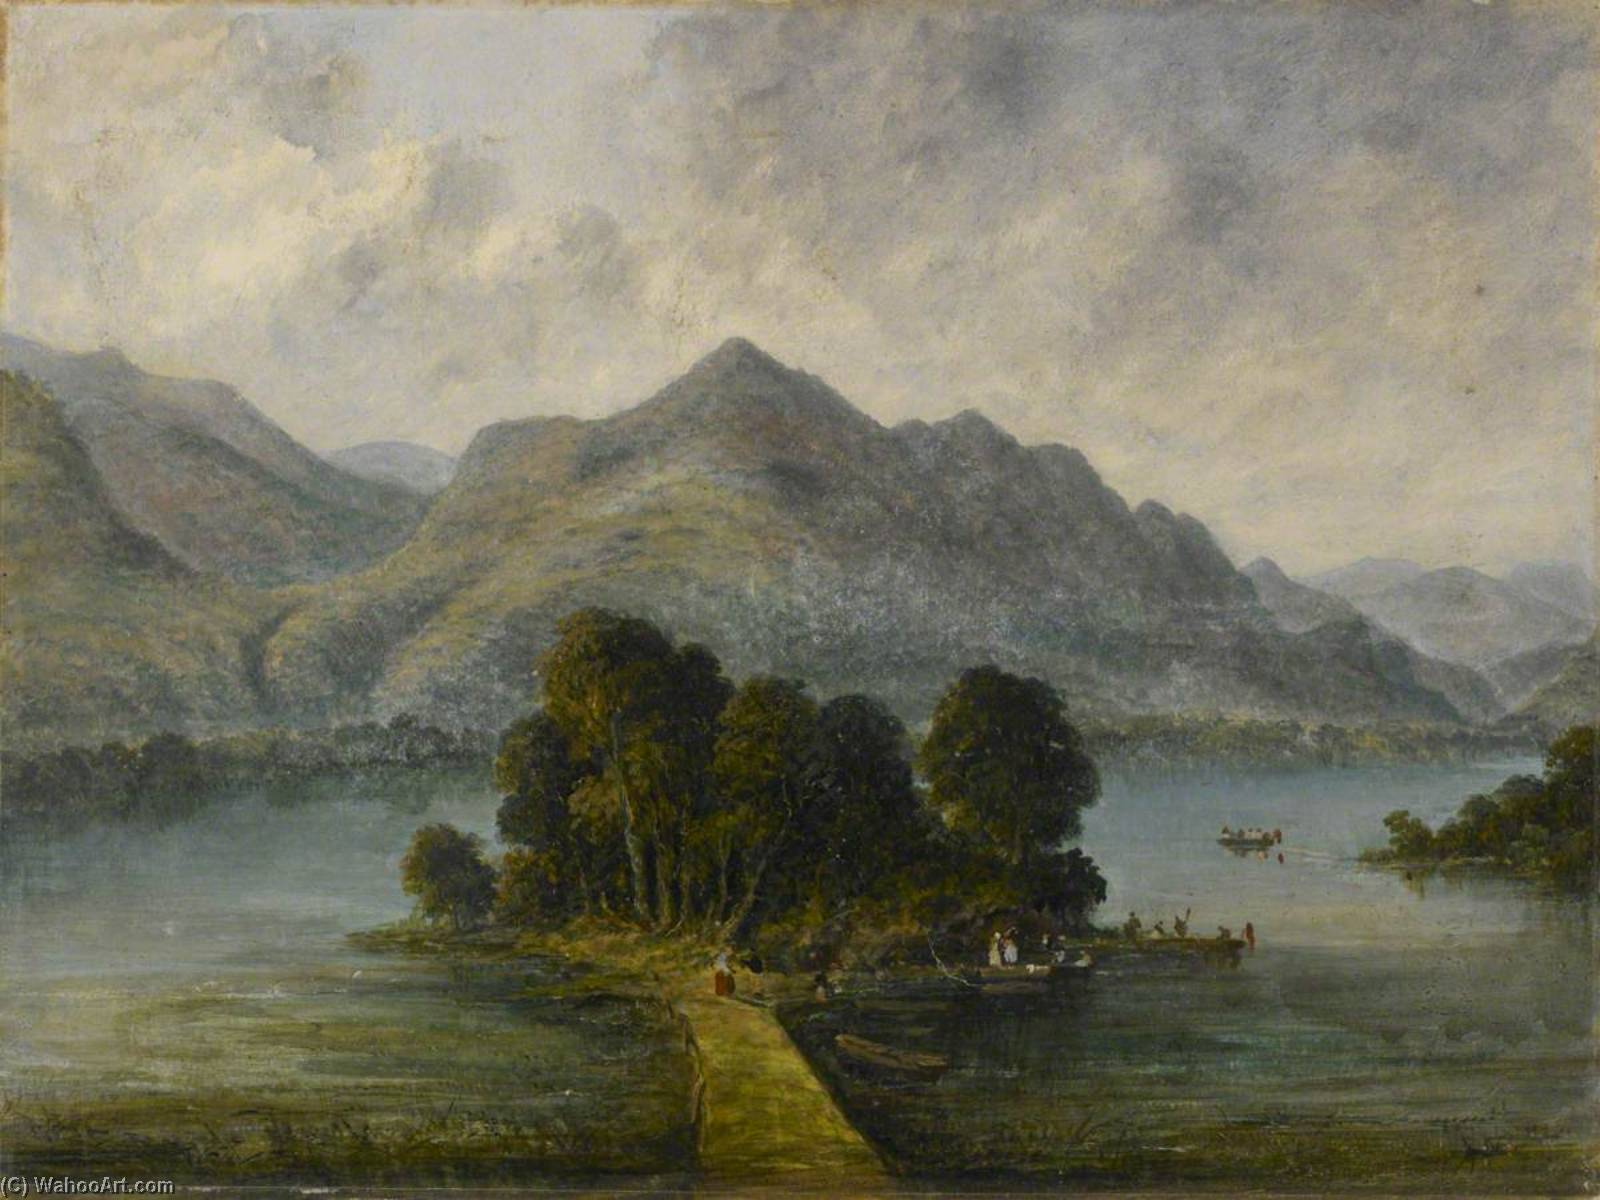 Landing Stage on a River, Western Ghats, Oil by William Robert Houghton